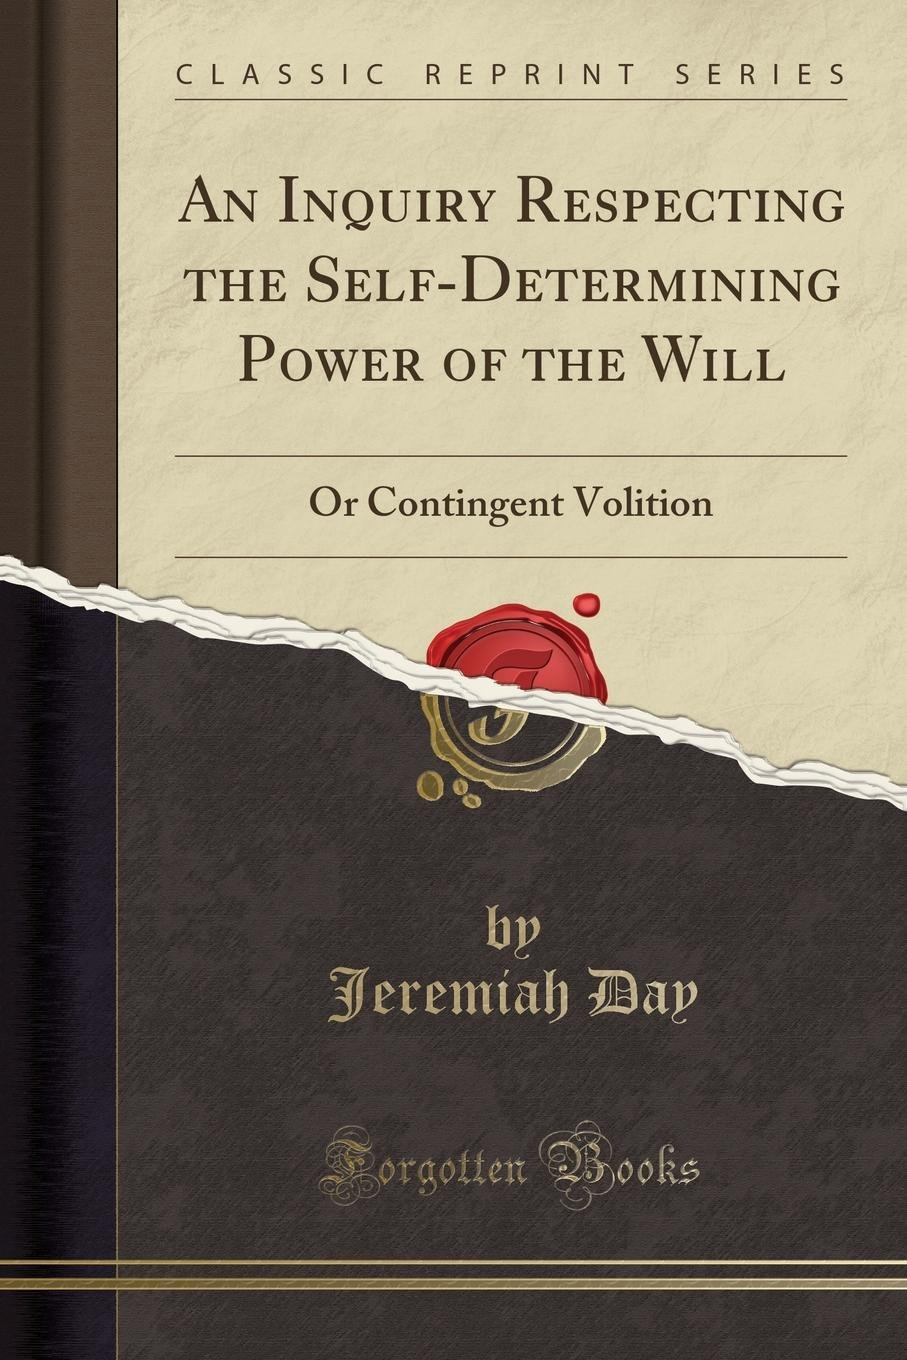 An Inquiry Respecting the Self-Determining Power of the Will  Or Contingent  Volition (Classic Reprint) Paperback – July 1 f502b618f